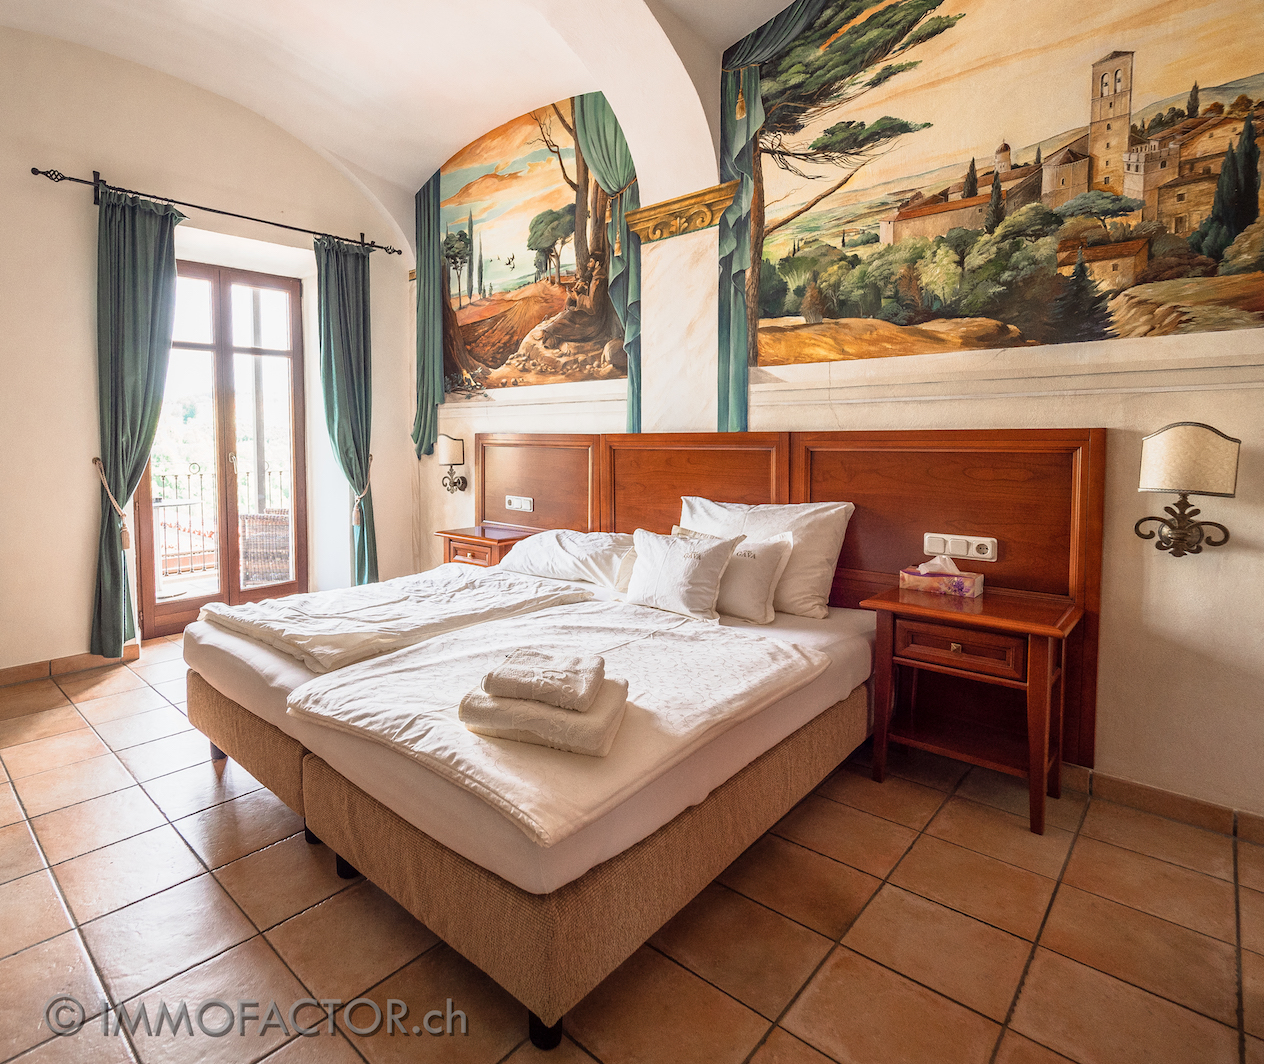 Guest room with mural painting